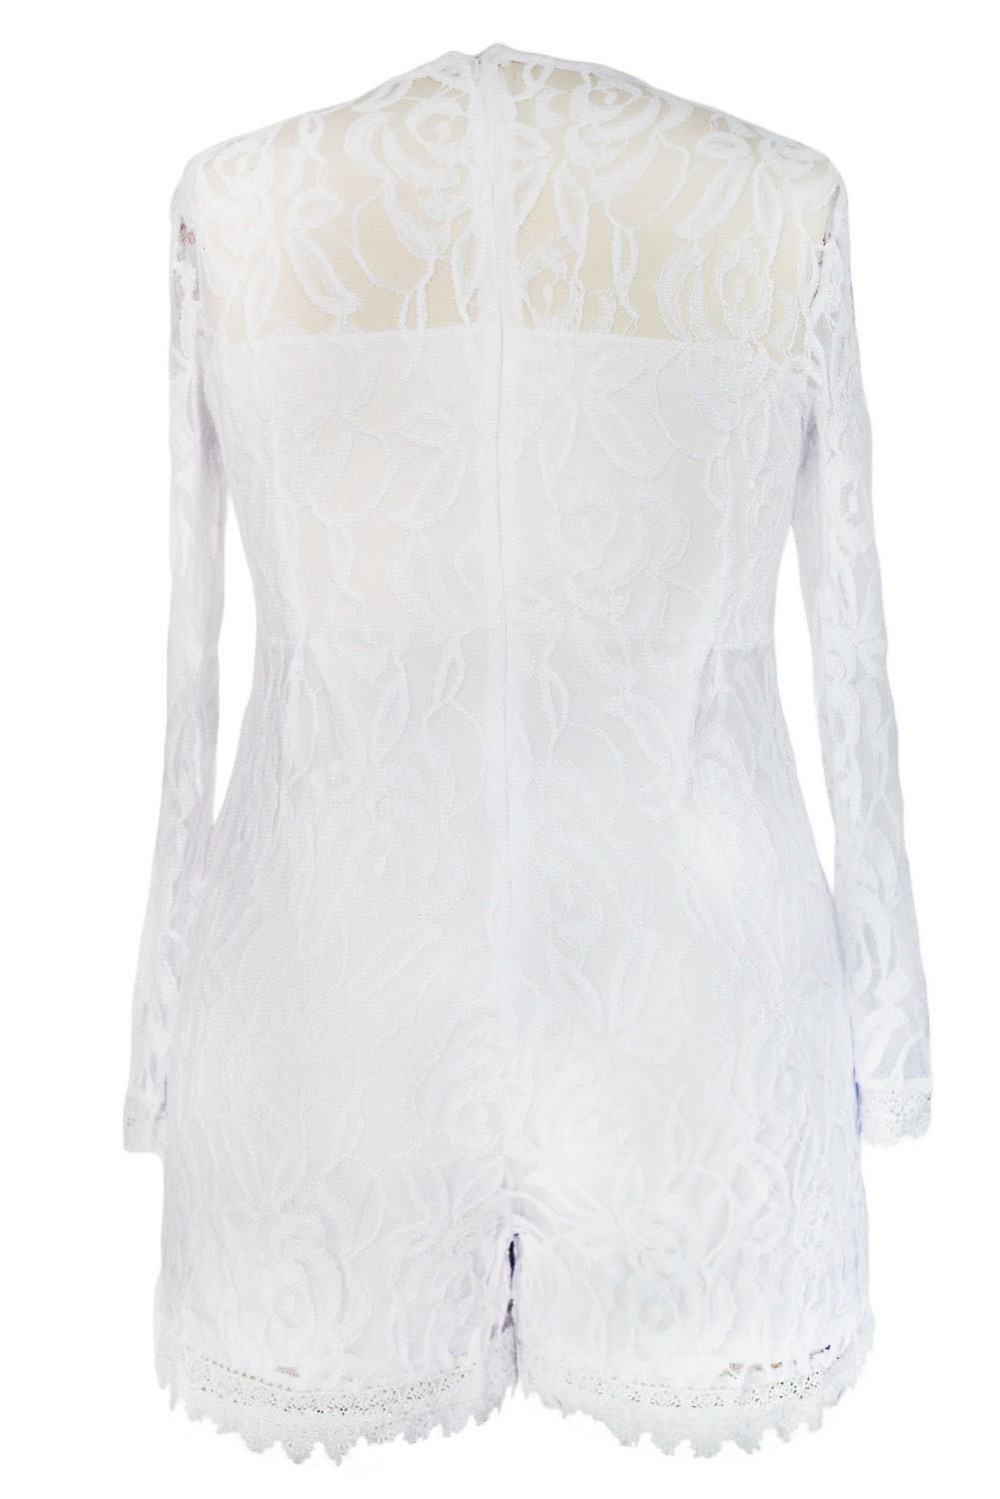 White-Plus-Size-Long-Sleeve-Lace-Romper-LC60599-1-5